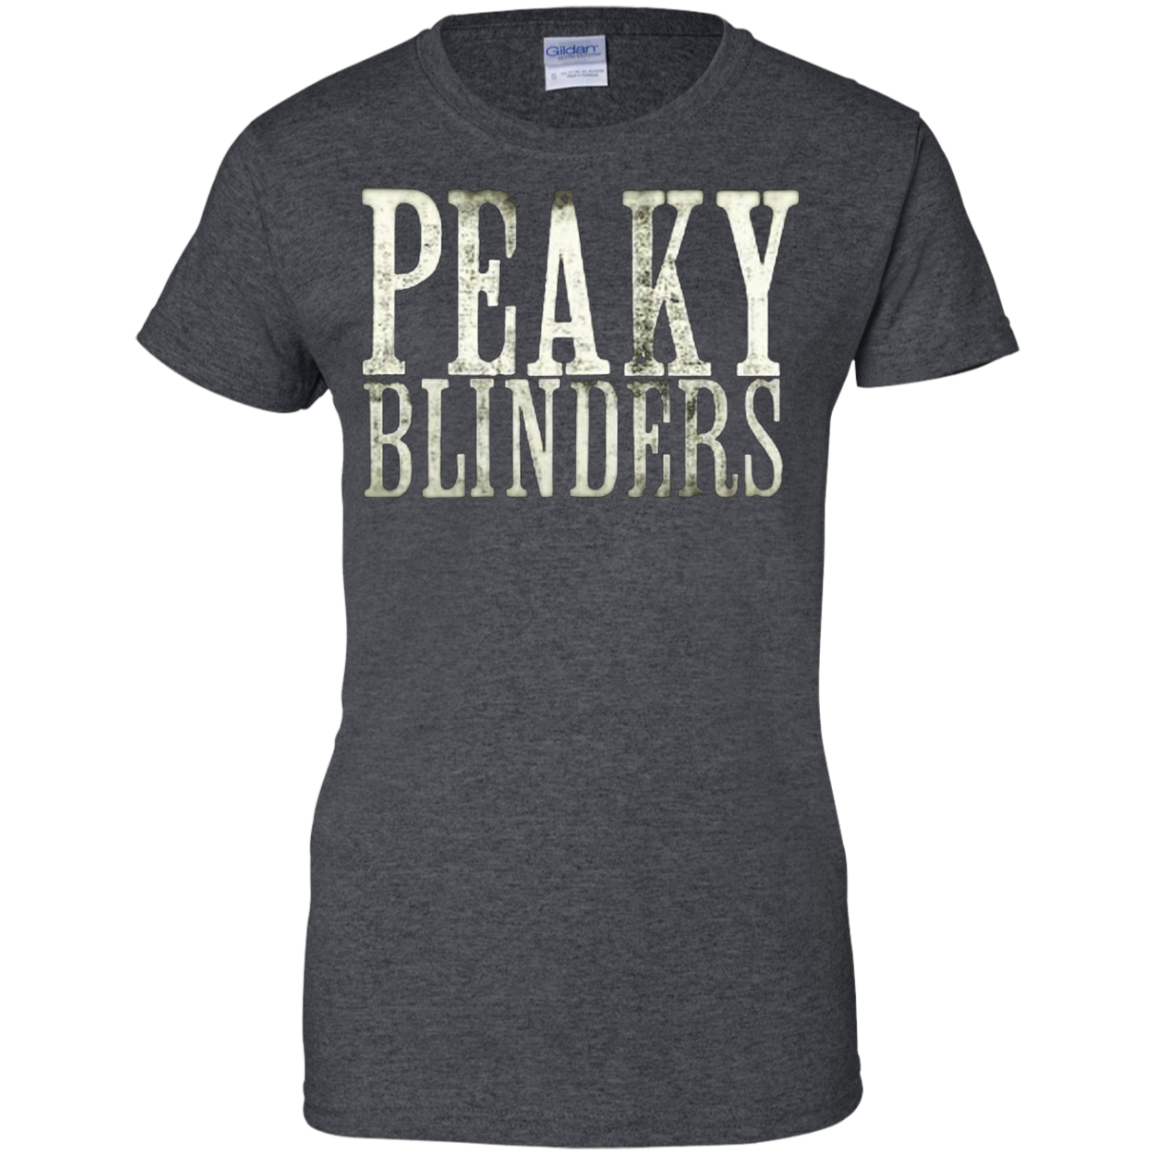 Men Womens Peaky Blinders T-shirts